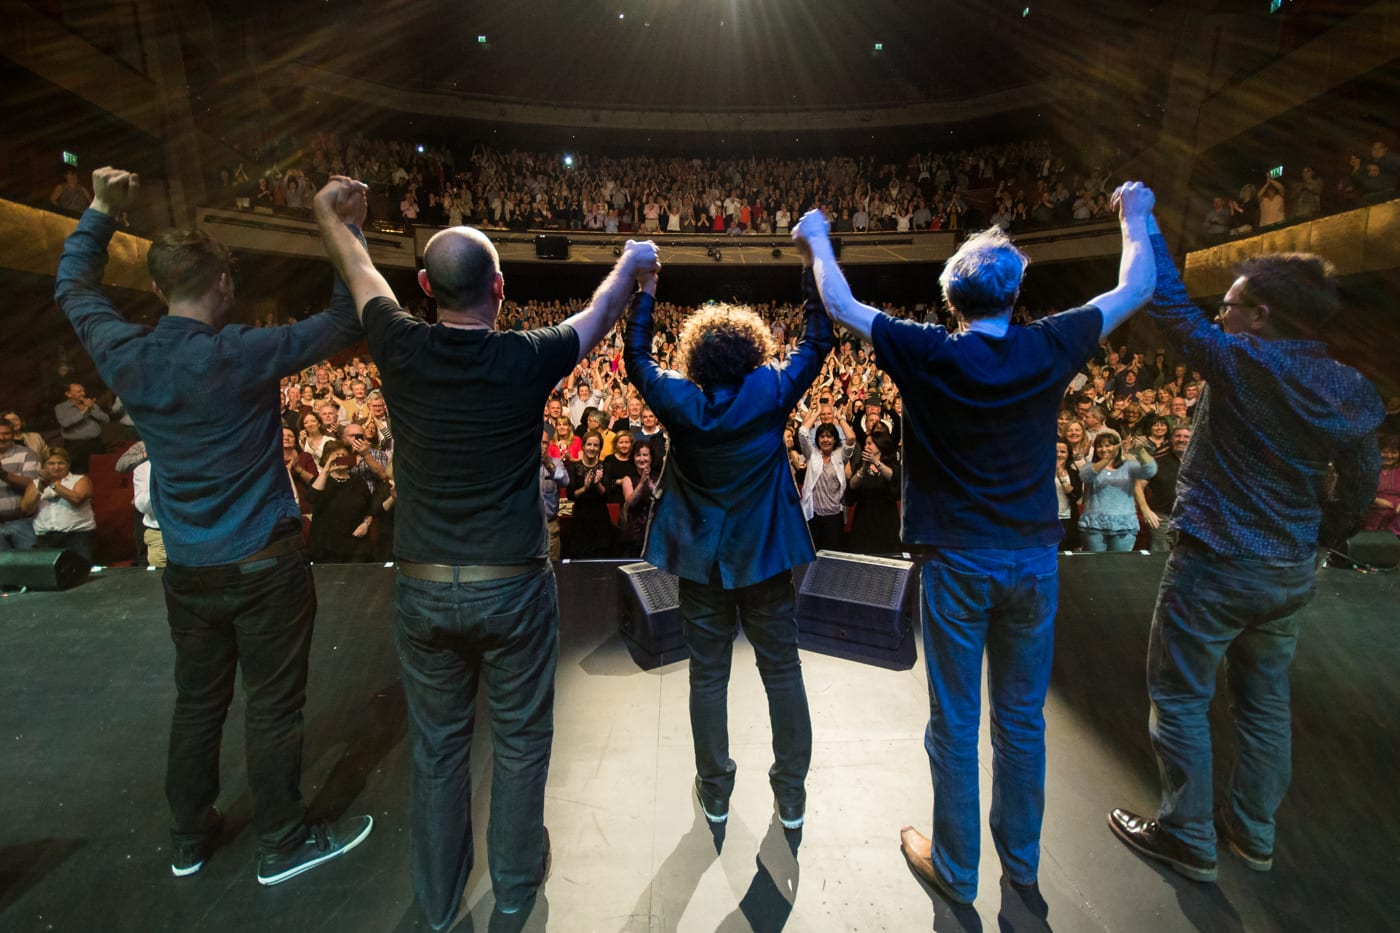 Leo Sayer at Bord Gais Energy Theatre by Sean Smyth (16-10-15) (127 of 129)